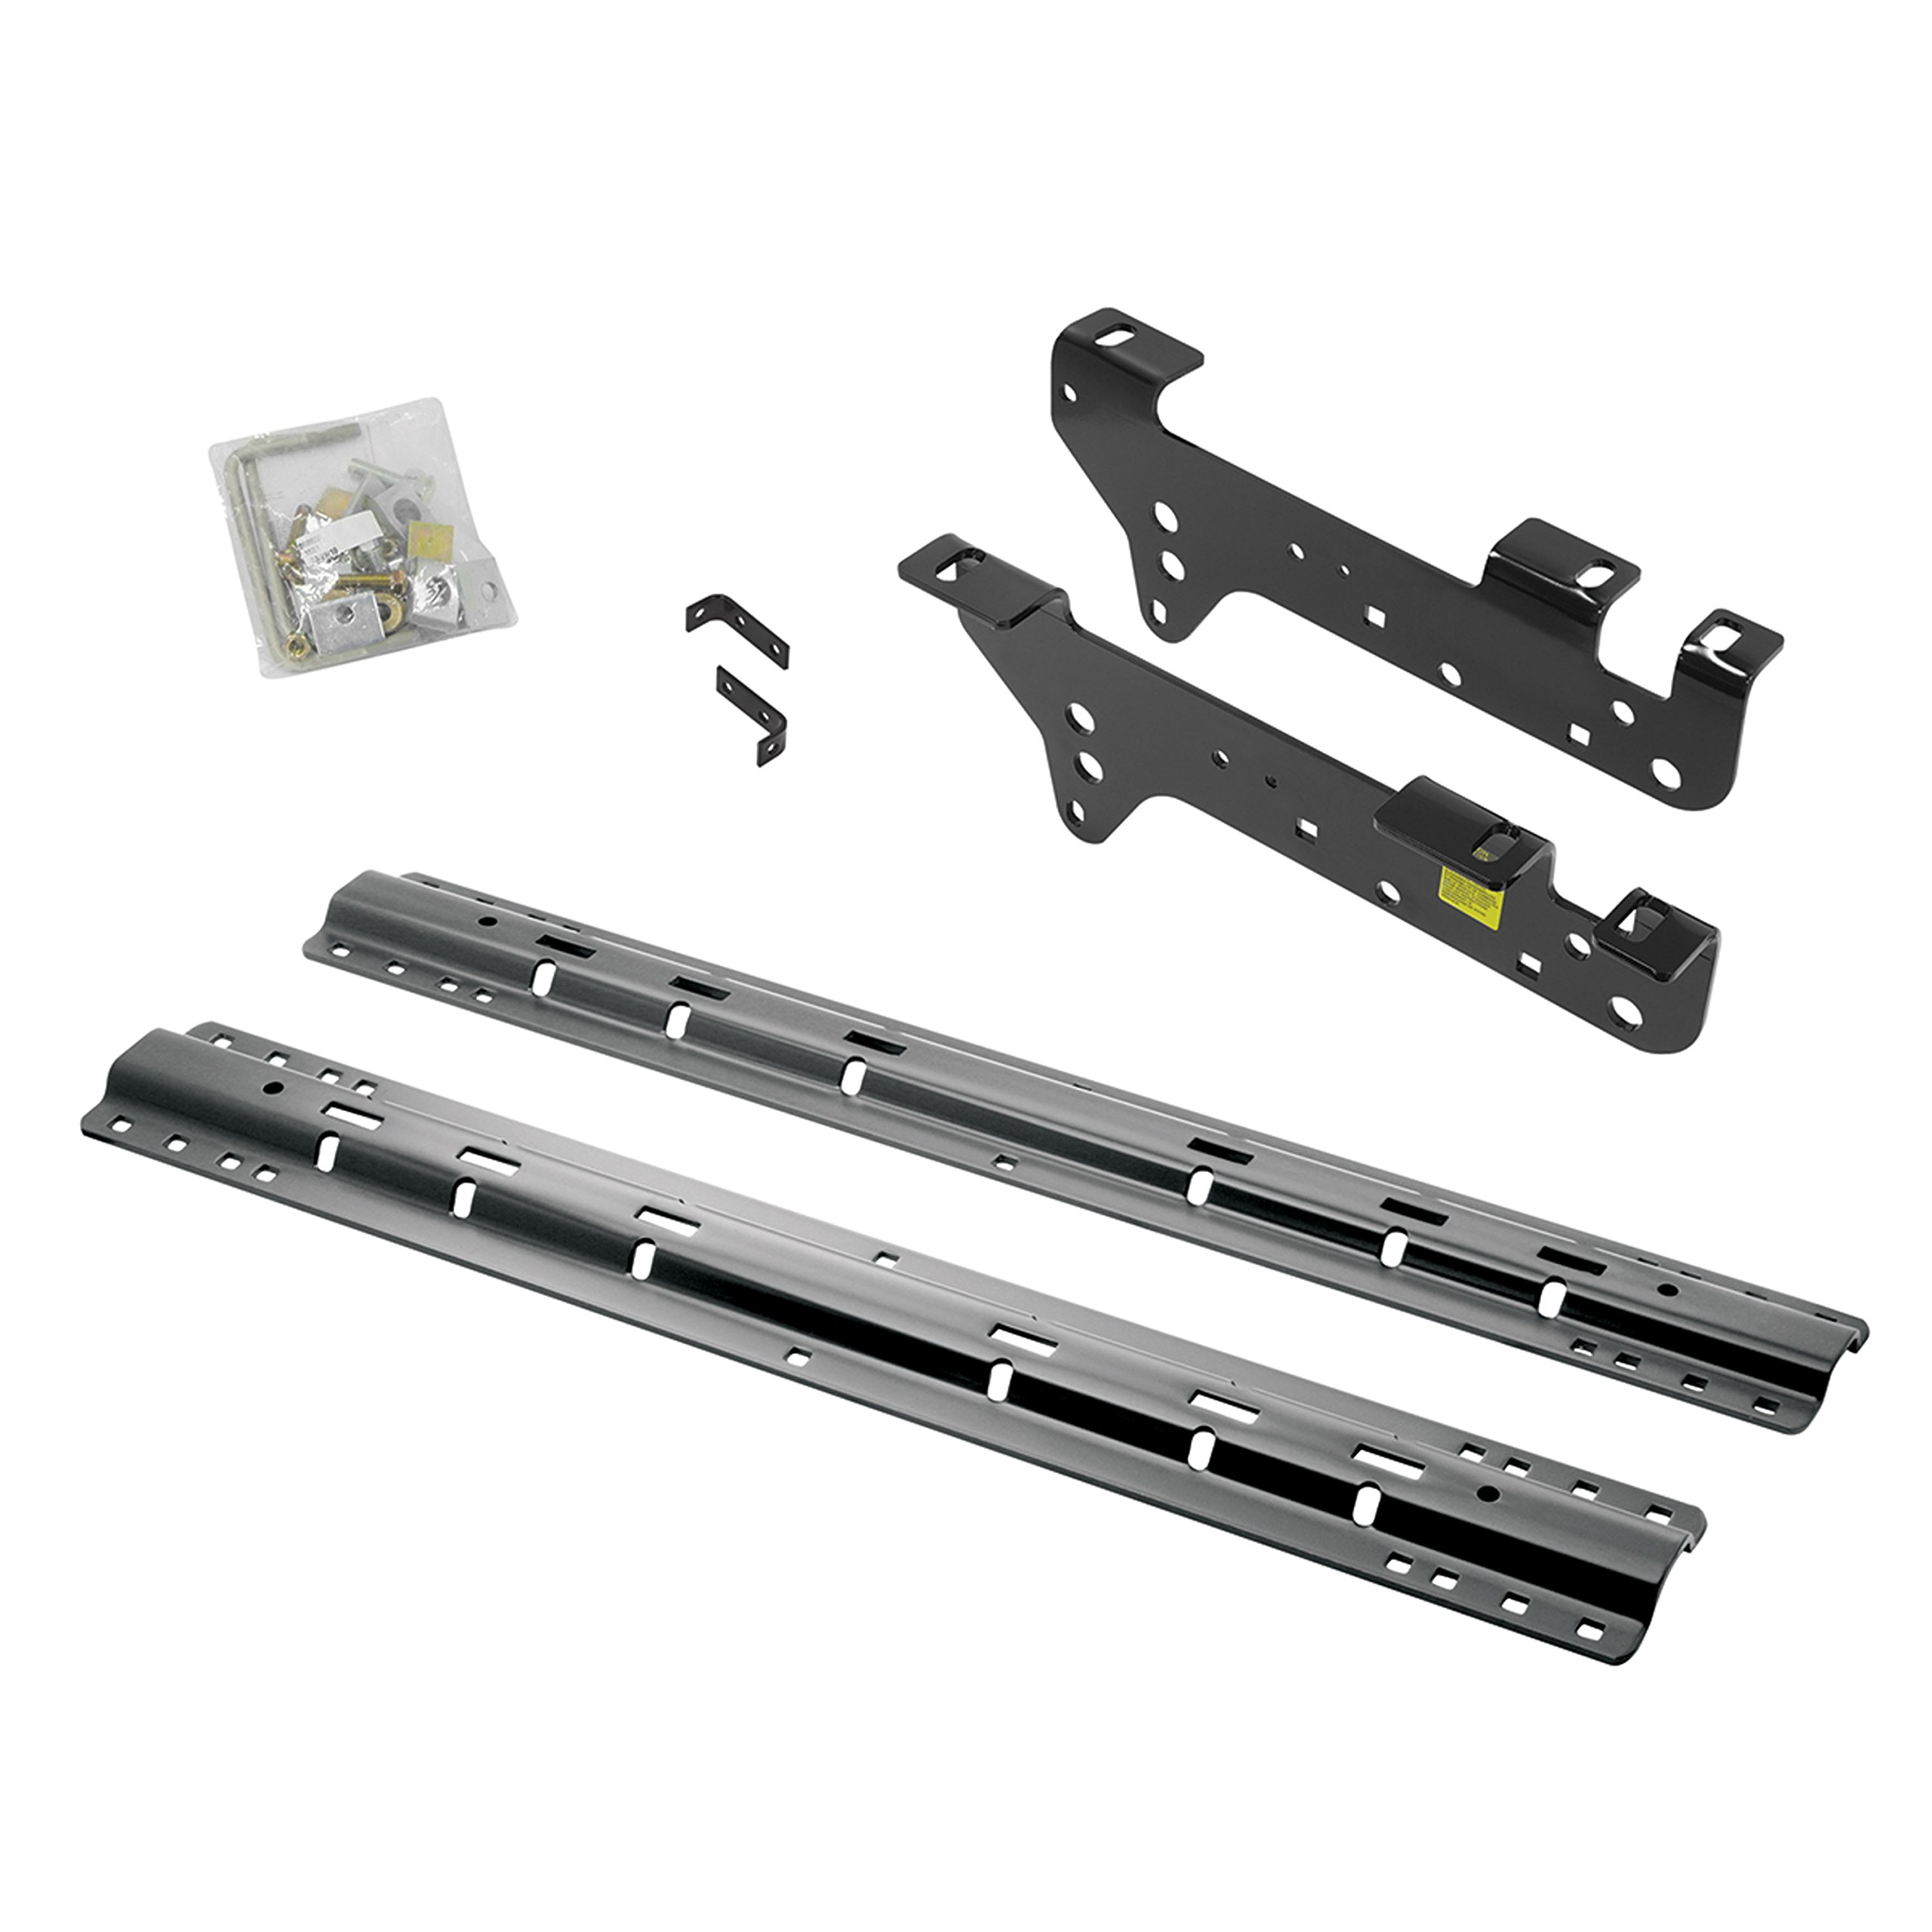 Reese 50082-58 Fifth Wheel Custom Quick Install Kit - Ford F-250 / F-350 Super Duty '99-'10 by Reese Towpower